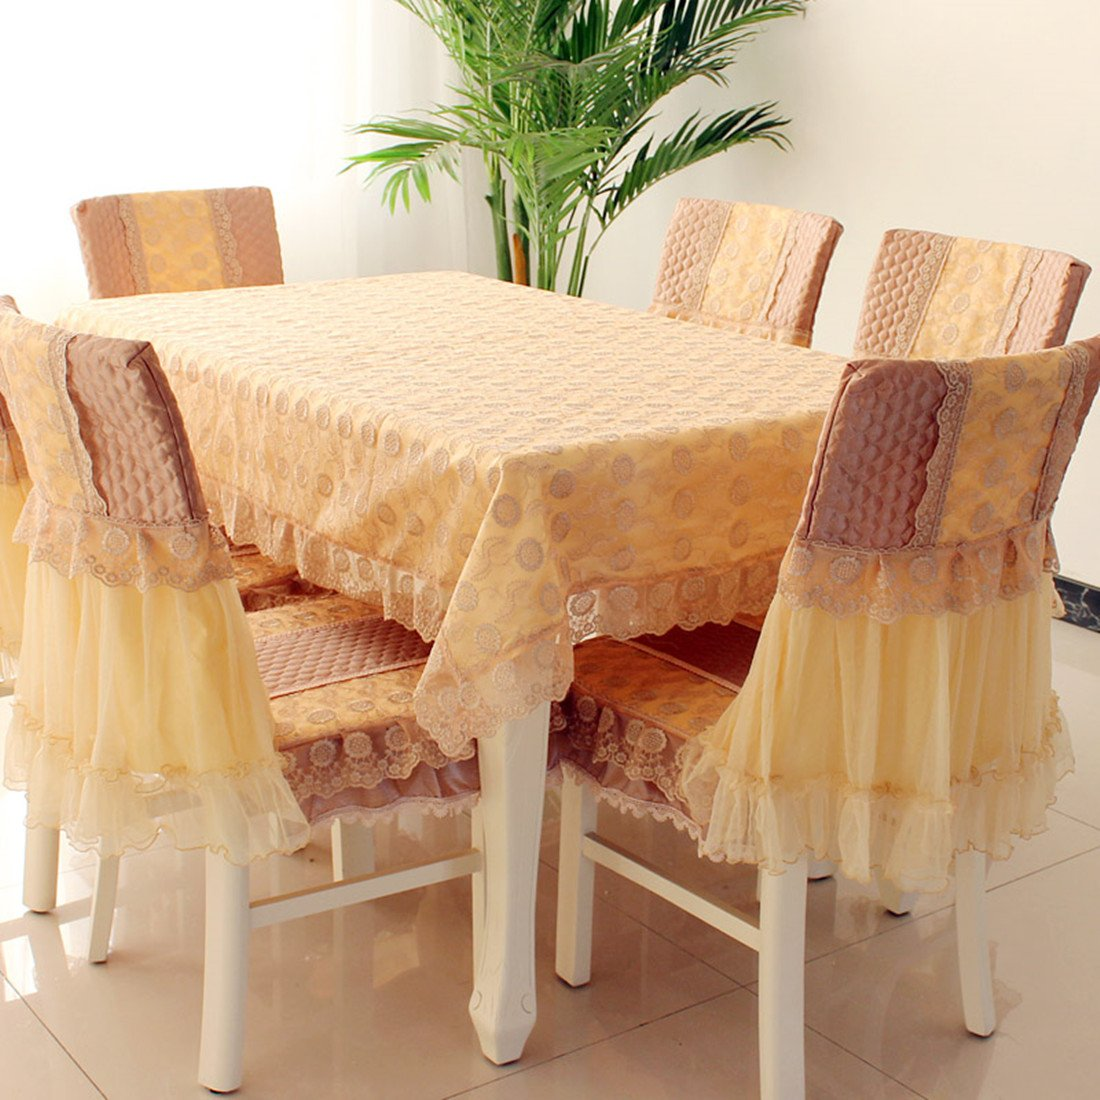 Country style yellow check lace rectangular tablecloths 59''78''(150 200cm) cream